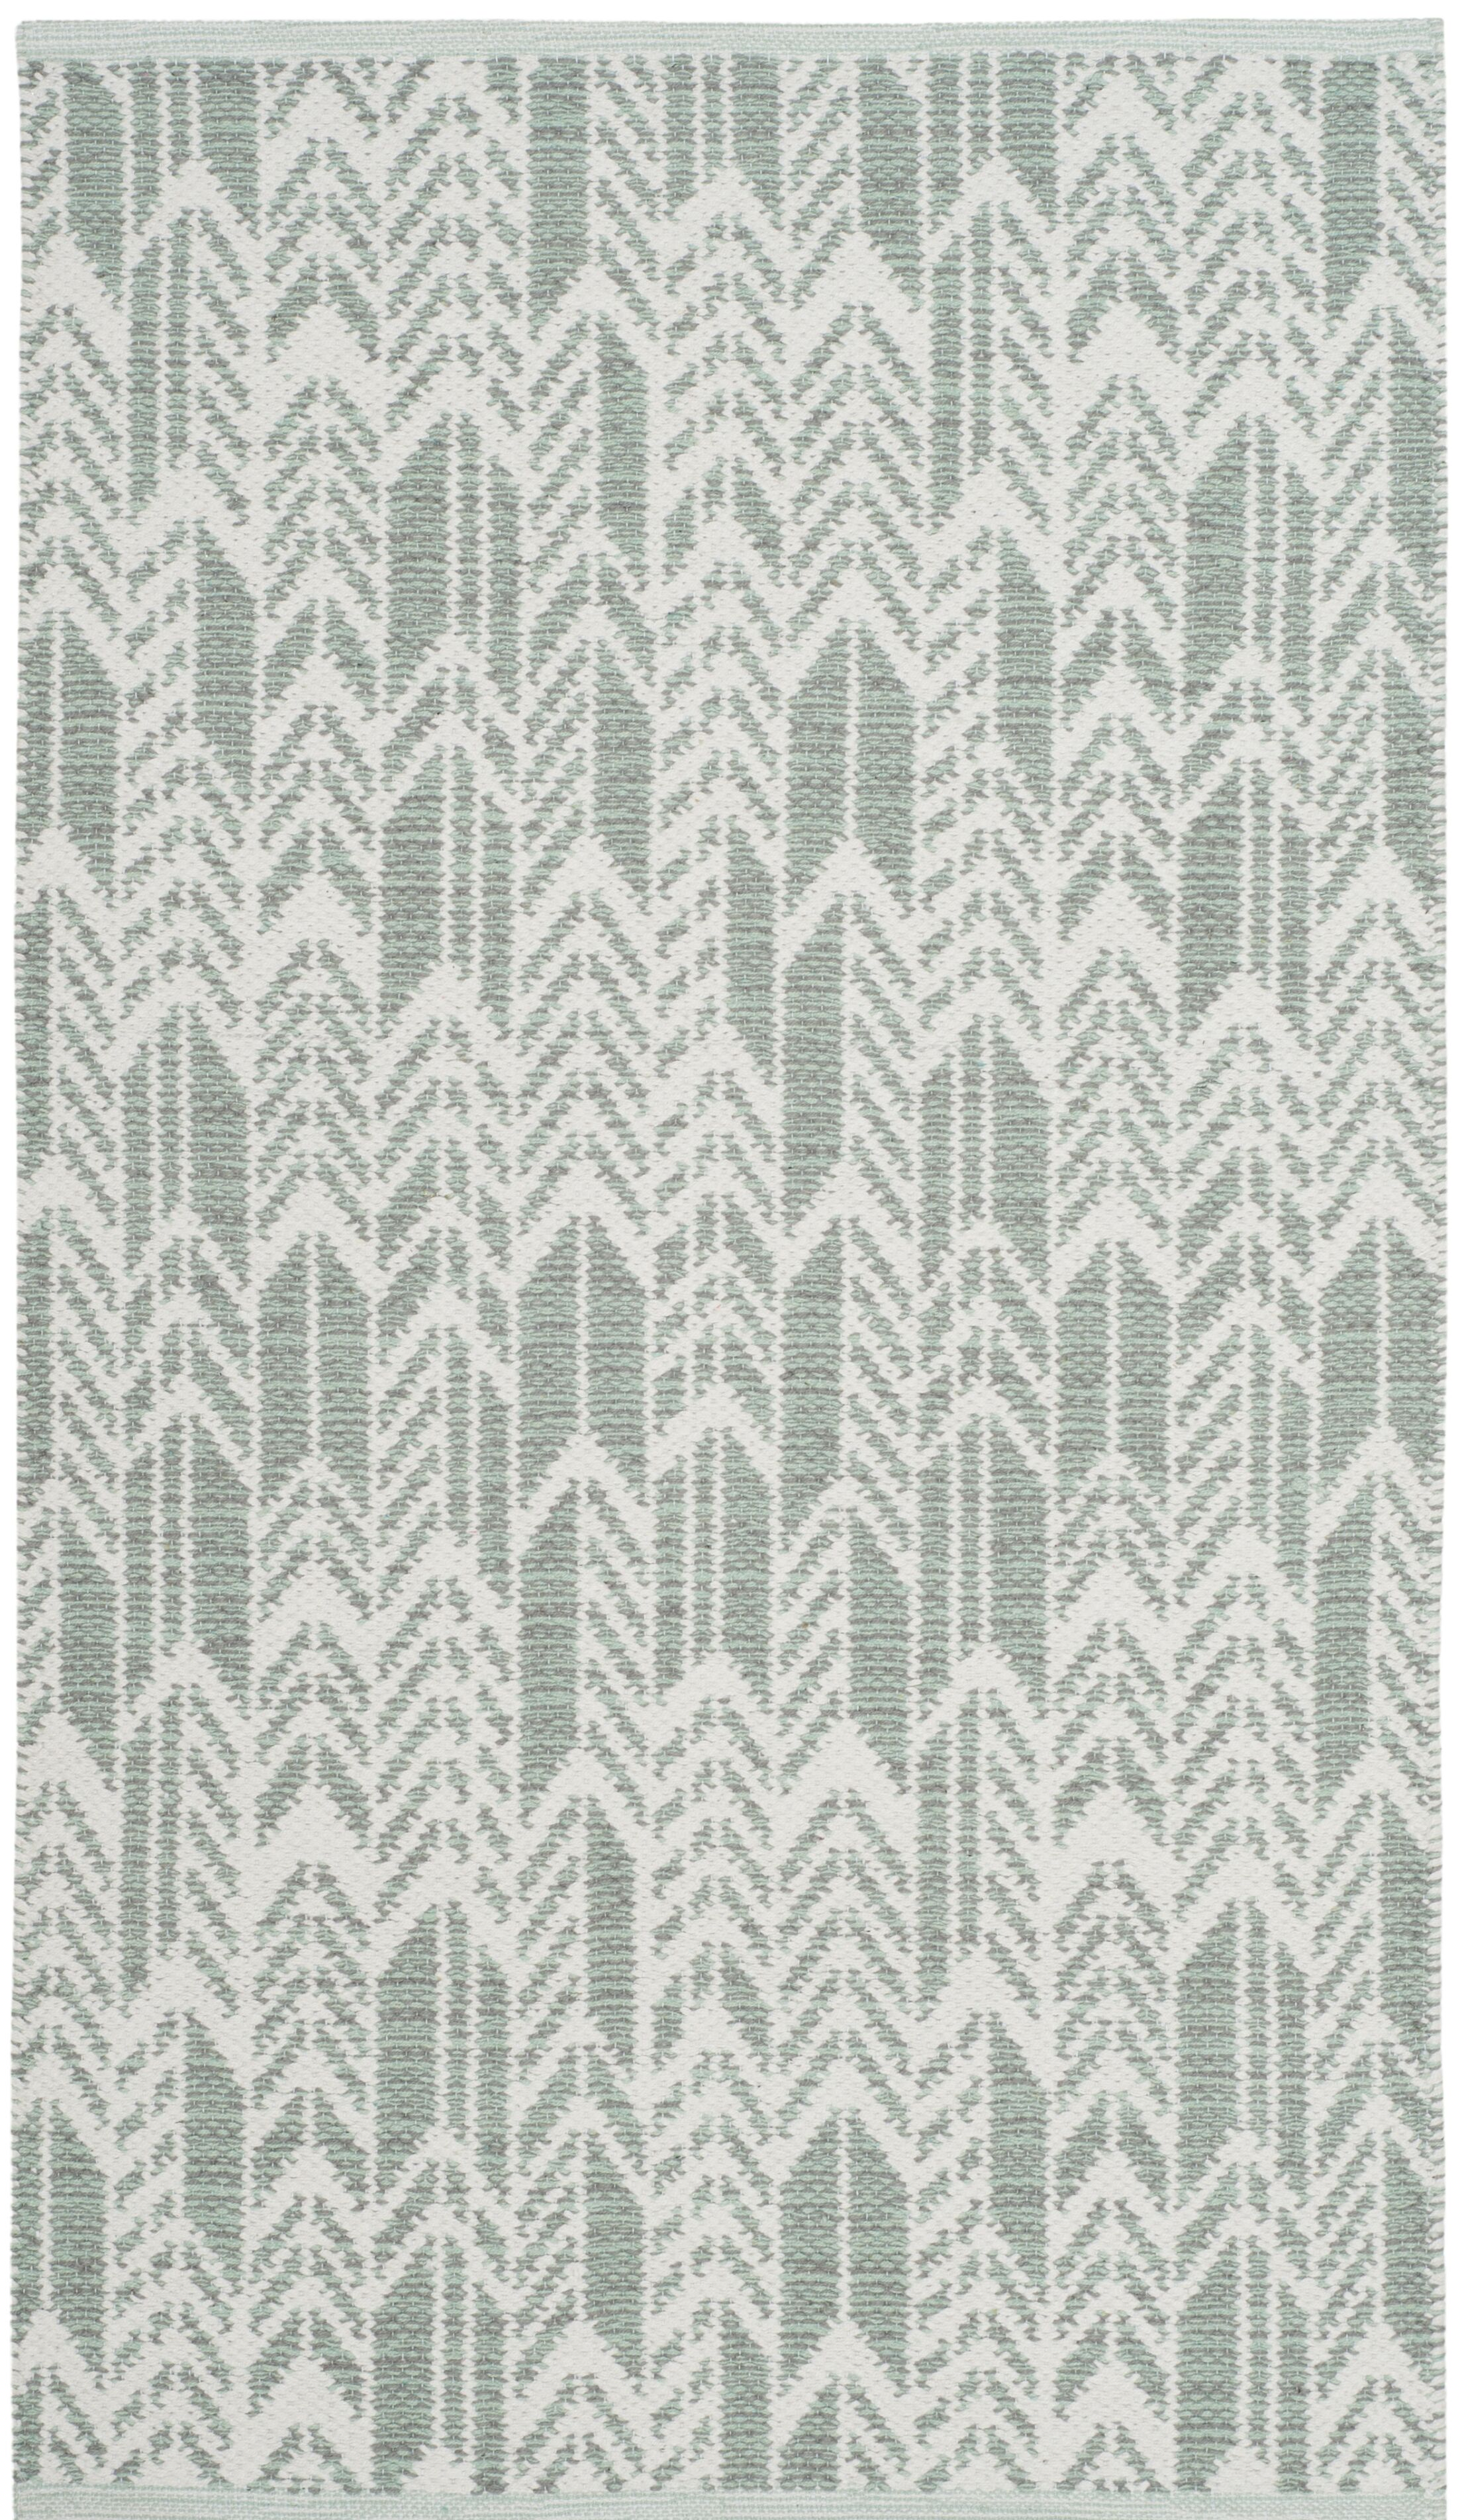 Paz Hand-Woven Light Green/Ivory Area Rug Rug Size: Rectangle 5' x 8'